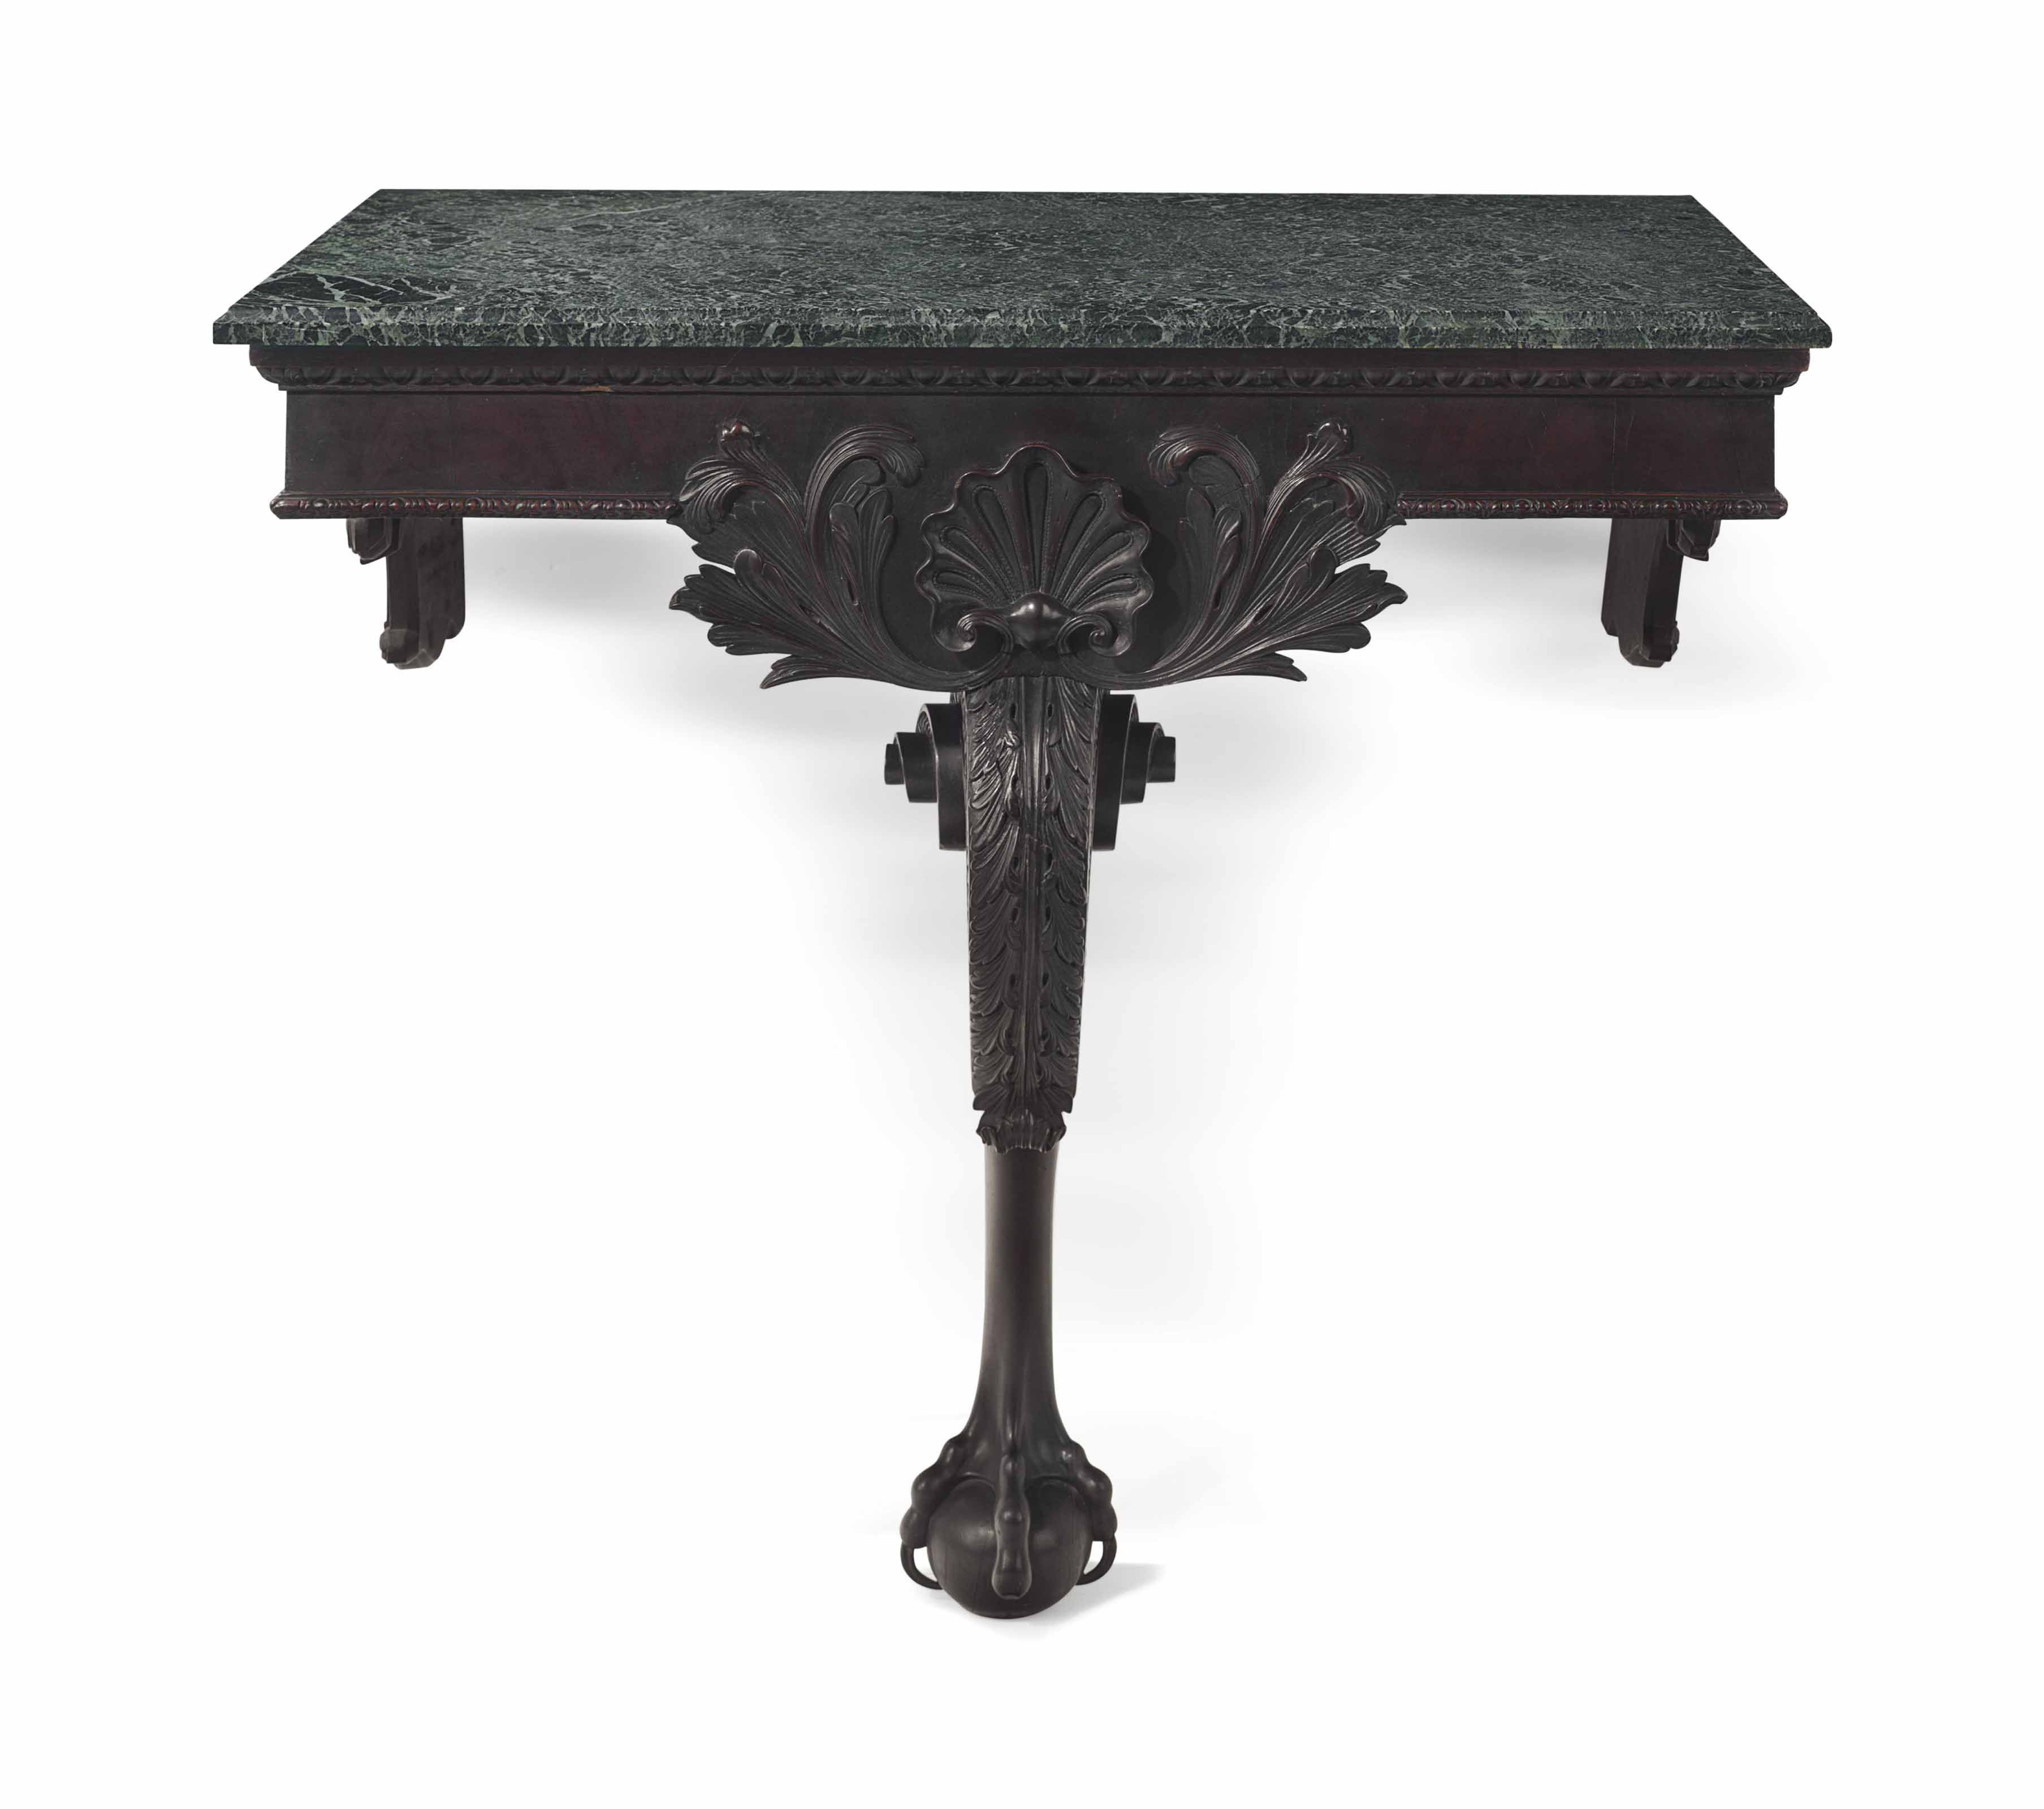 Date Unspecified An Irish George Ii Mahogany Console Table Mid 18th Century Price Realised Usd 40 000 Console Table Mahogany Wall Table